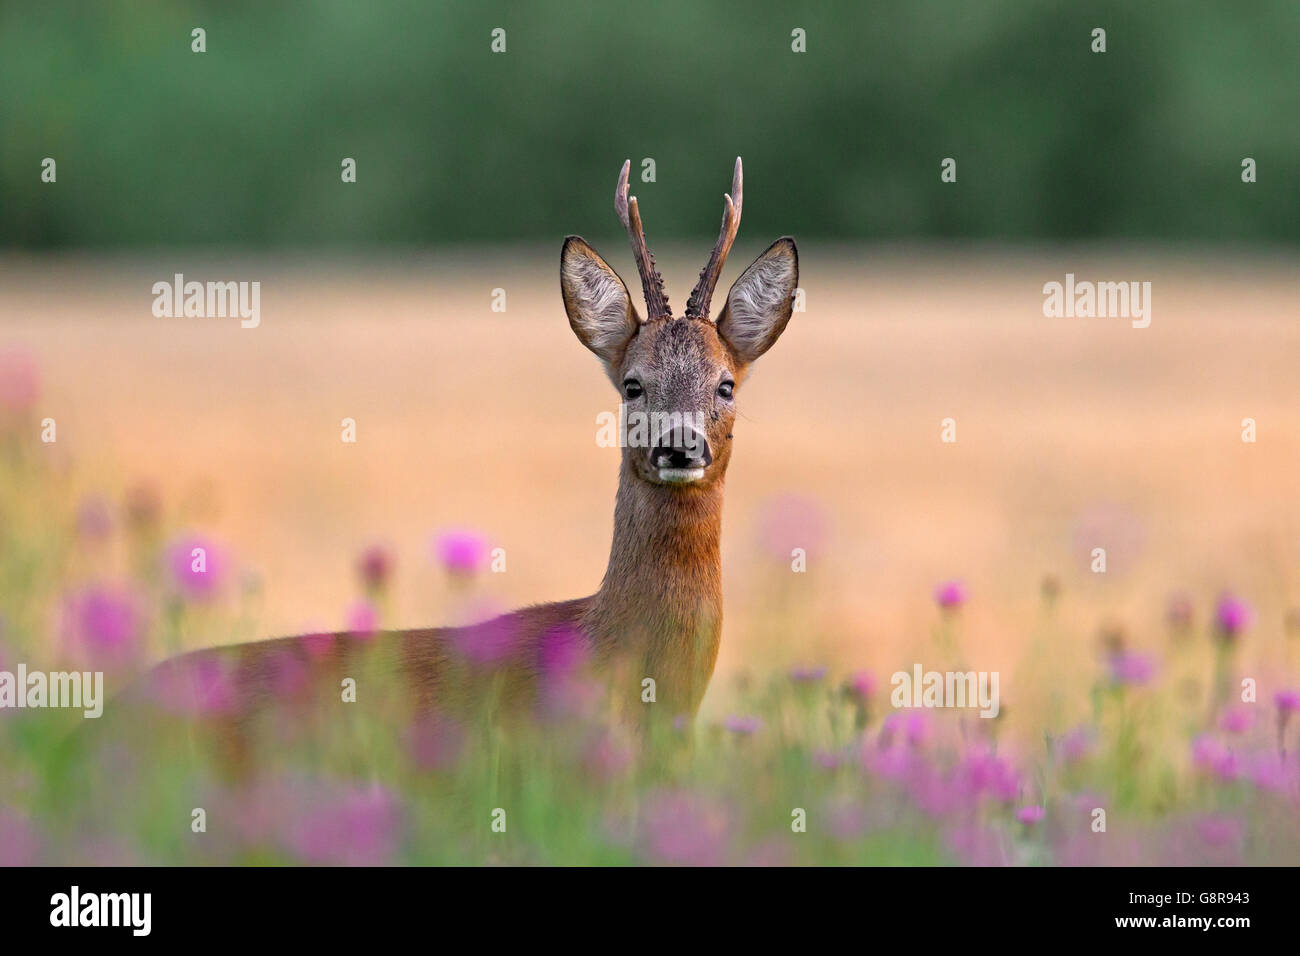 European roe deer (Capreolus capreolus) buck among wildflowers in farmland in summer - Stock Image